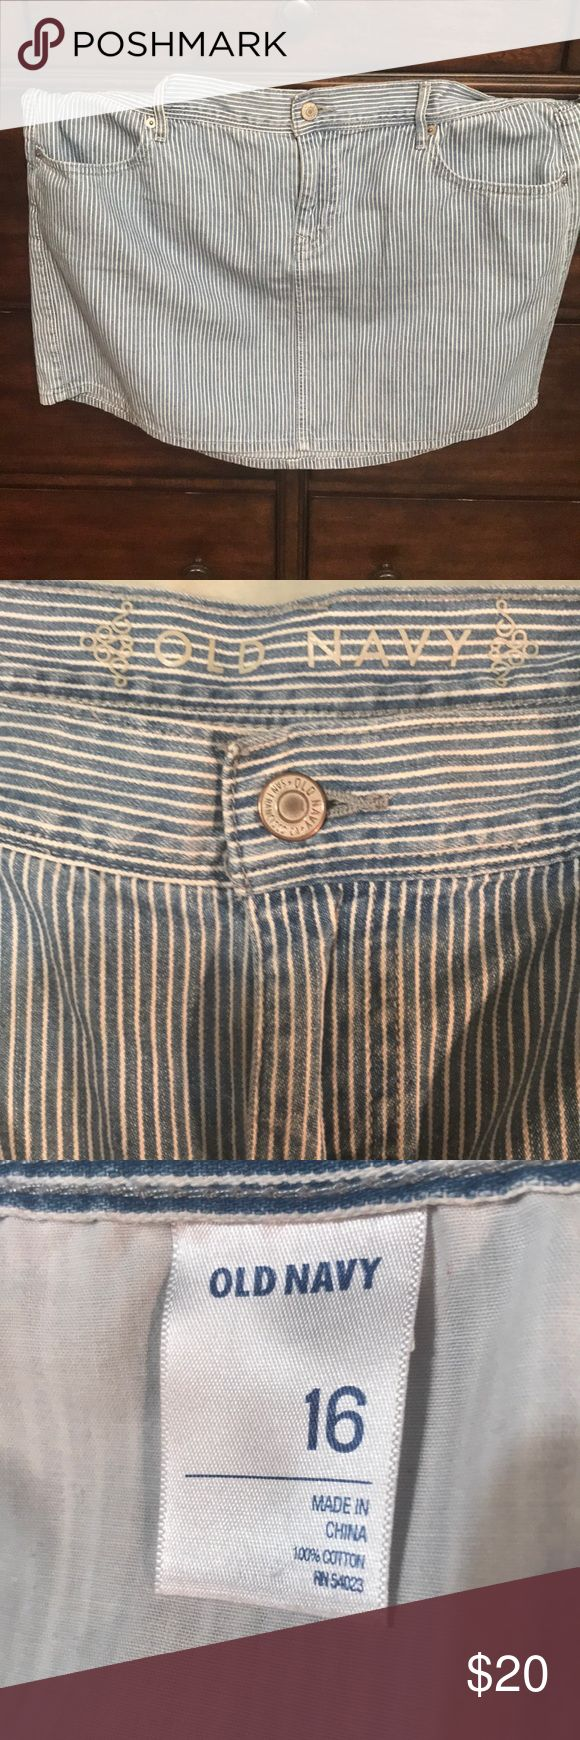 Old Navy Striped Skirt Old Navy • Size 16 • Blue & White Striped Denim   This skirt is in near perfect condition. It was only worn twice and for very short amounts of time. Old Navy Skirts Mini